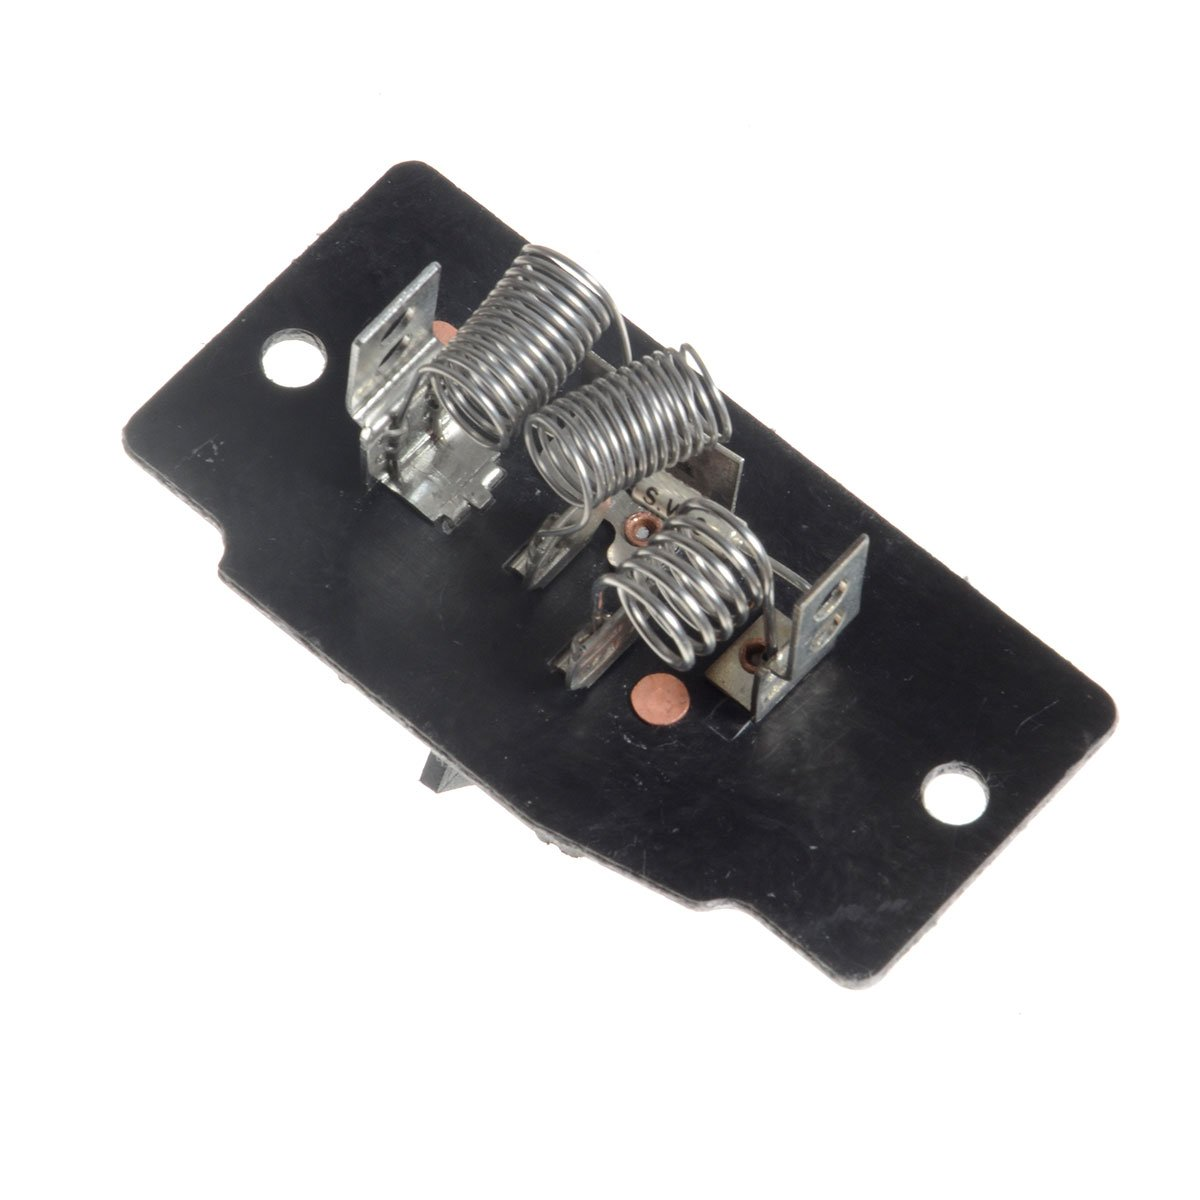 AC Heater Blower Motor Resistor for Ford Crown Victoria 1992-2004 Lincoln Town Car 1994-1997 Mercury Grand Marquis 1981-2004 Marauder Colony Park YTAUTOPARTS